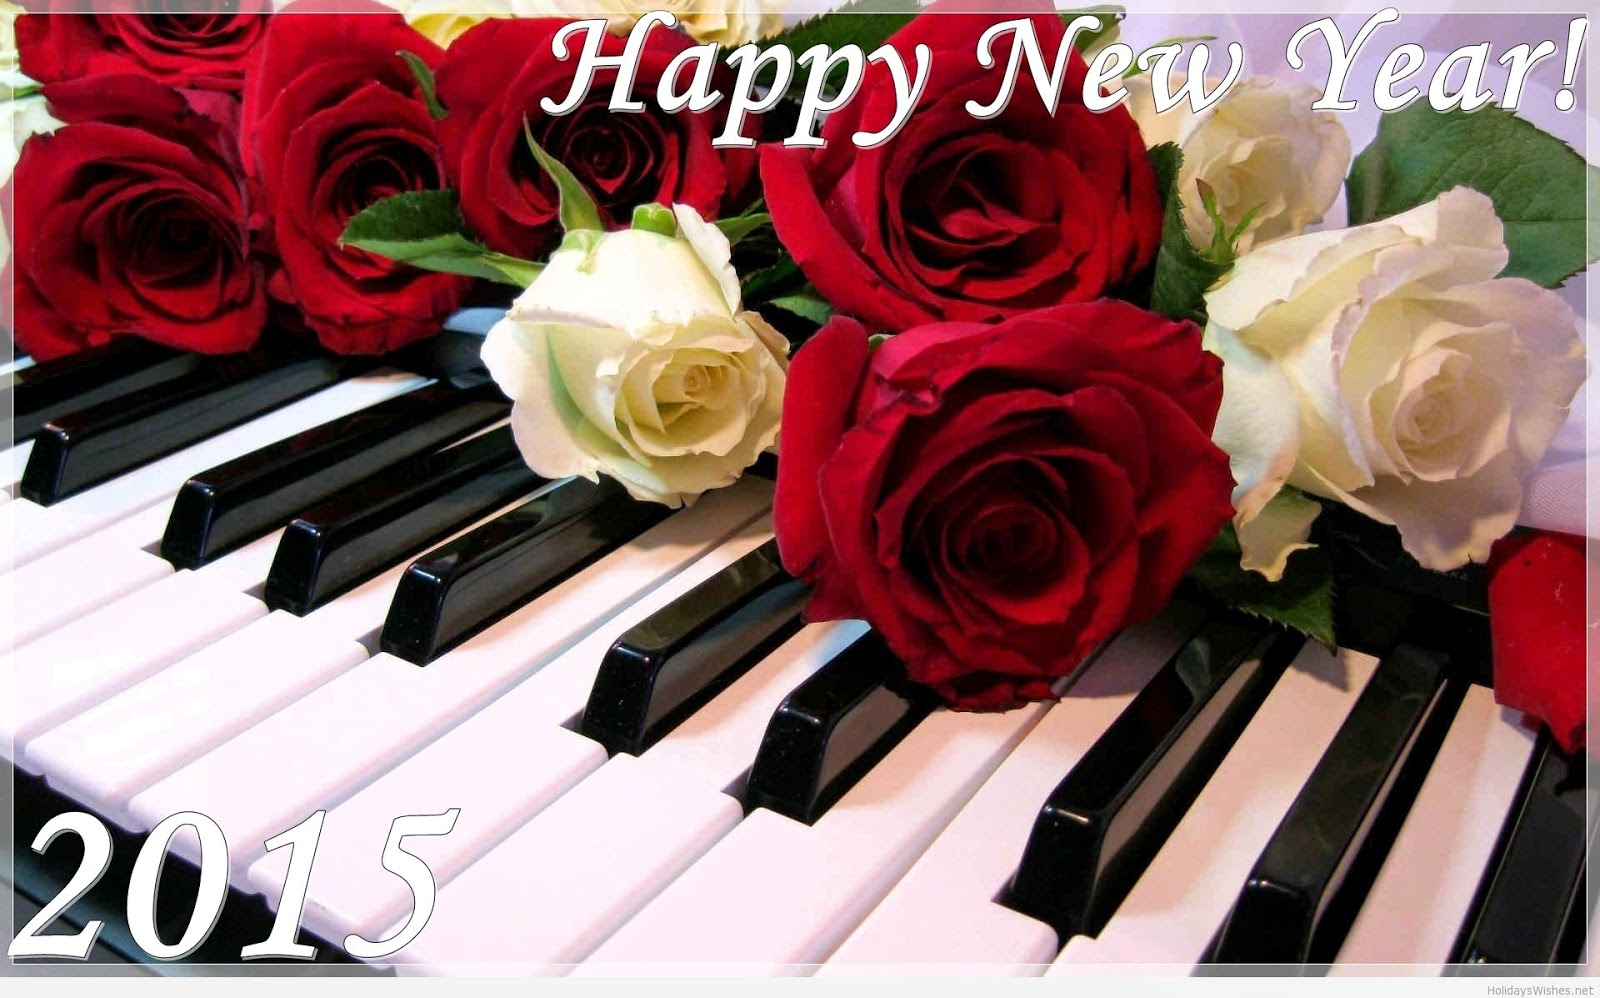 Happy New Year 2015 Roses Wallpaper - For Latest Free Download